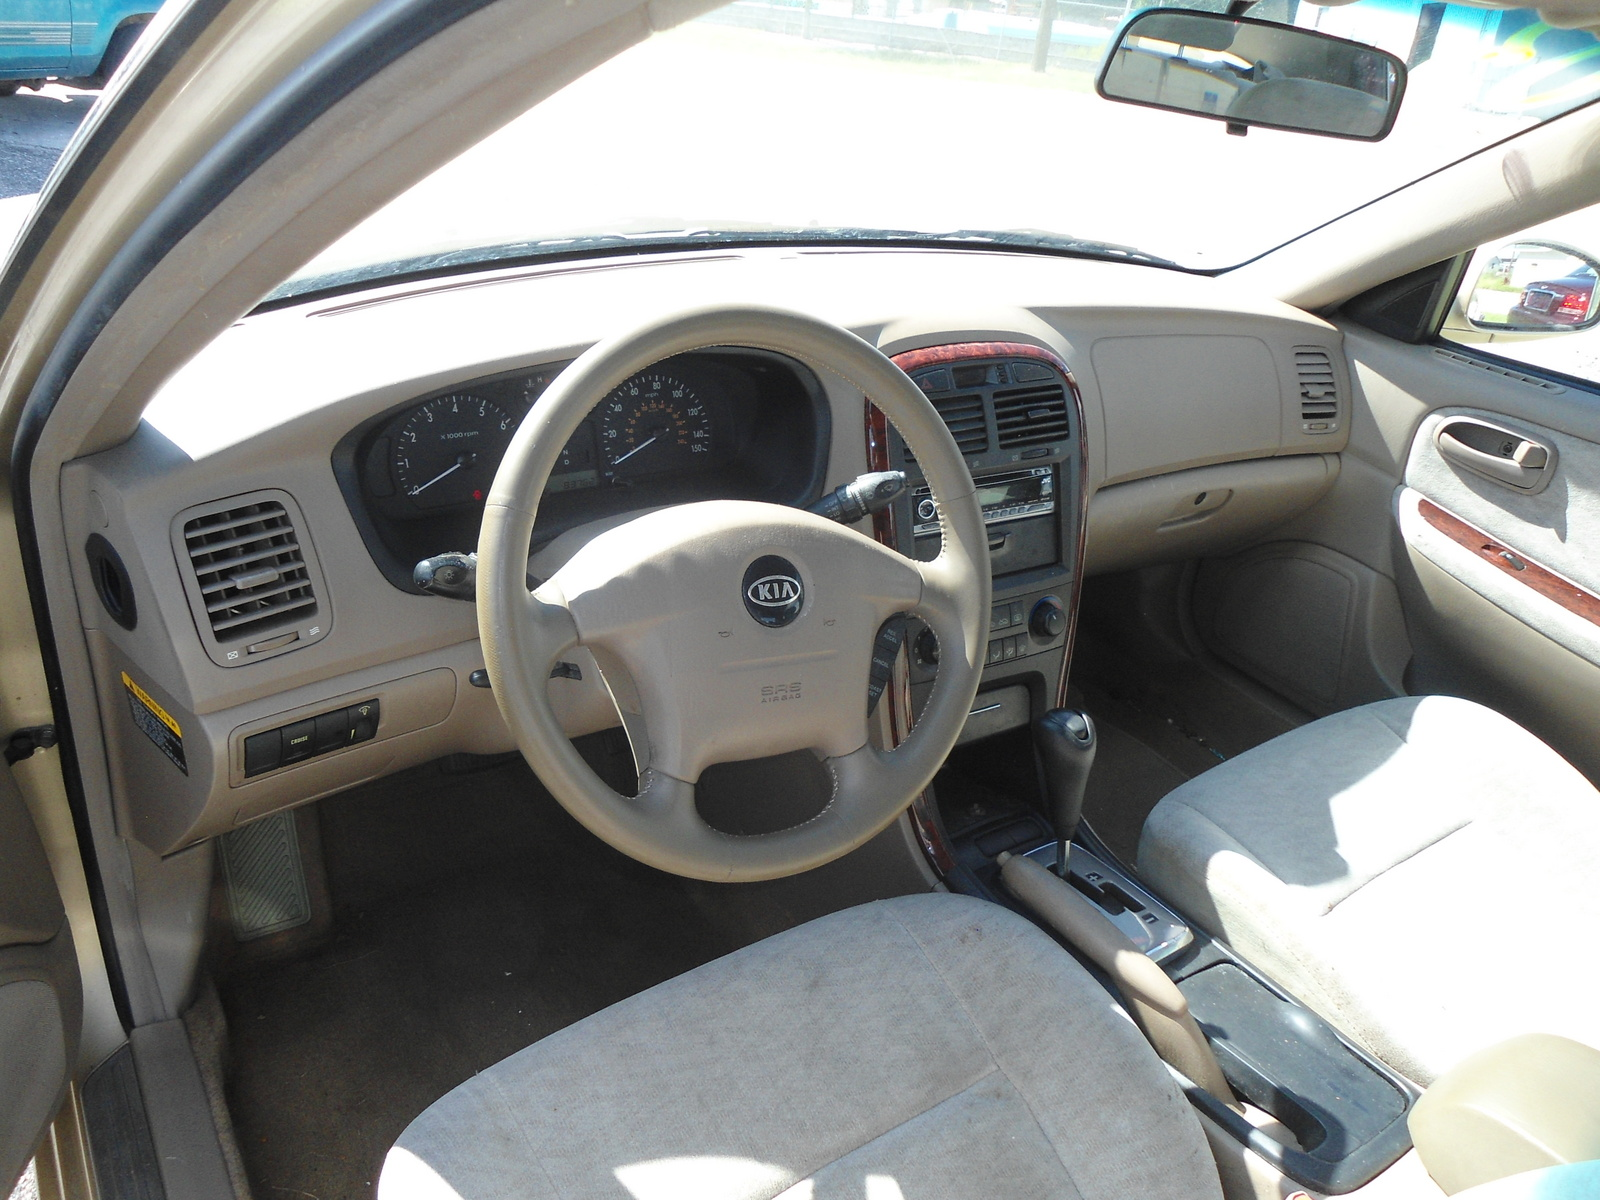 2003 Kia Optima - Interior Pictures